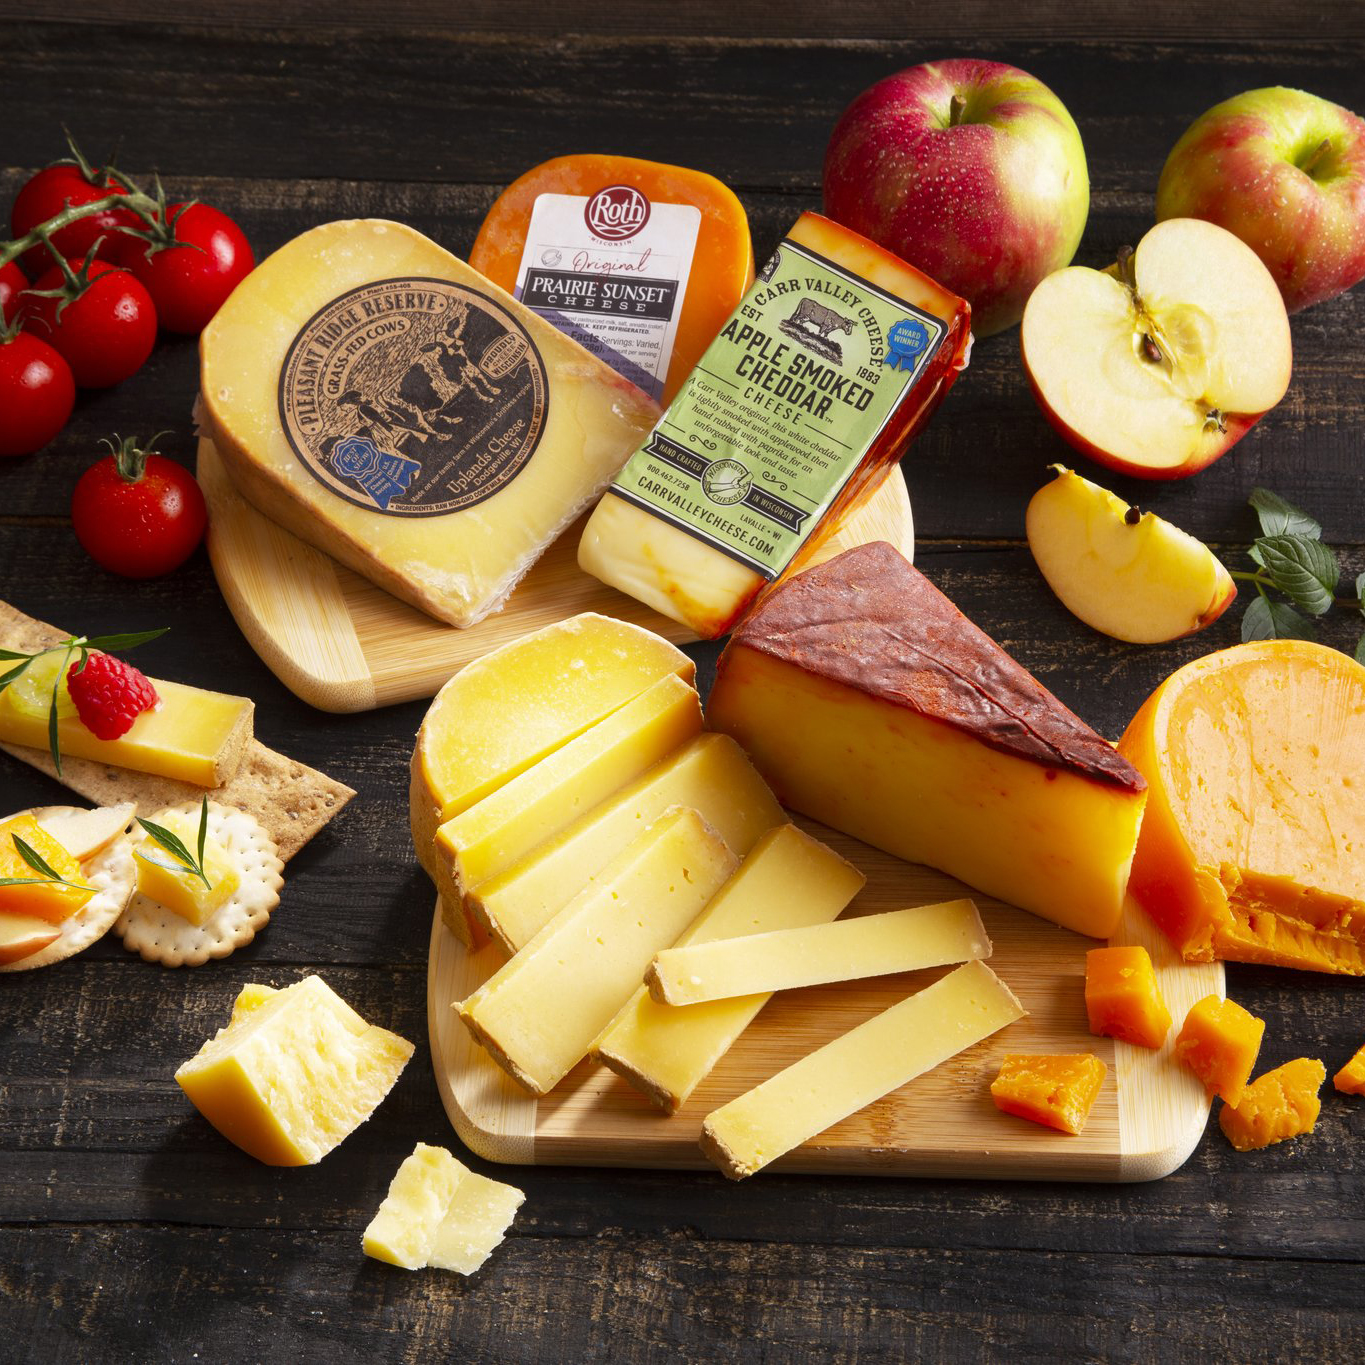 Wisconsin Artisan Award Winners Cheese Board surrounded by fruit and crackers